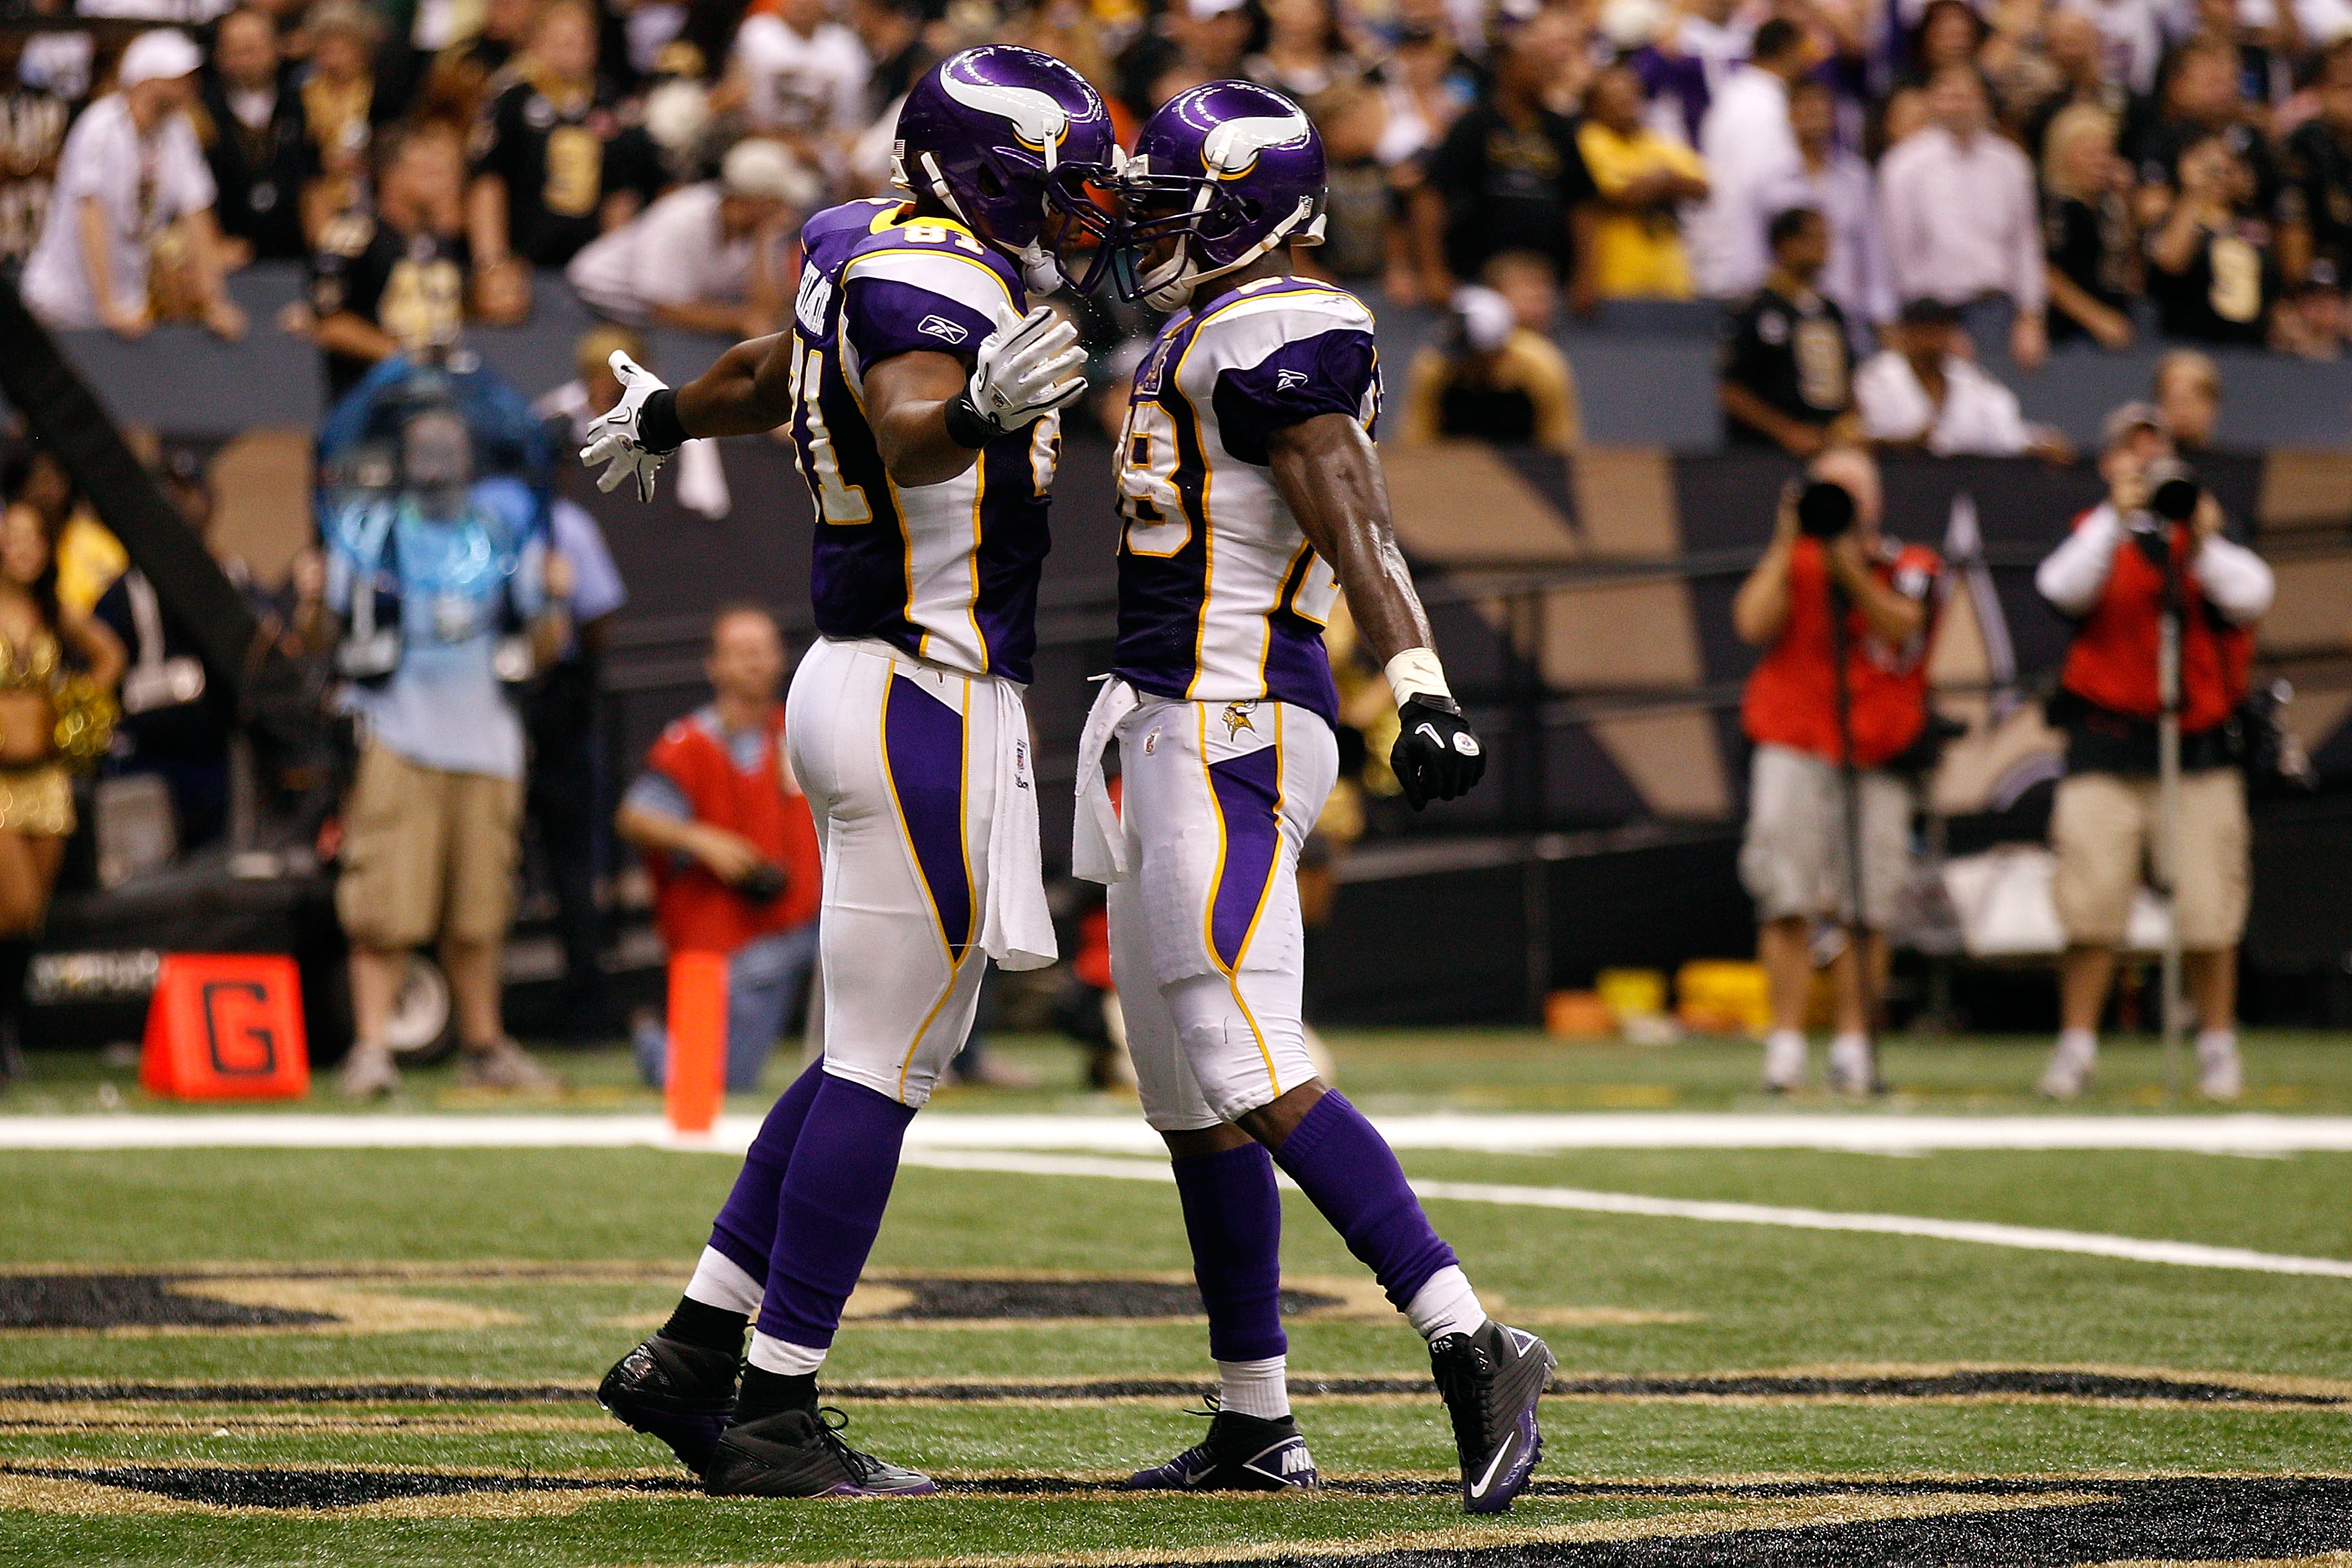 NEW ORLEANS - SEPTEMBER 09:  (L-R) Visanthe Shiancoe #81 and Adrian Peterson #28 of the Minnesota Vikings celebrate after Shiancoe scored a 20-yard touchdown reception in the second quarter against the New Orleans Saints at Louisiana Superdome on Septembe